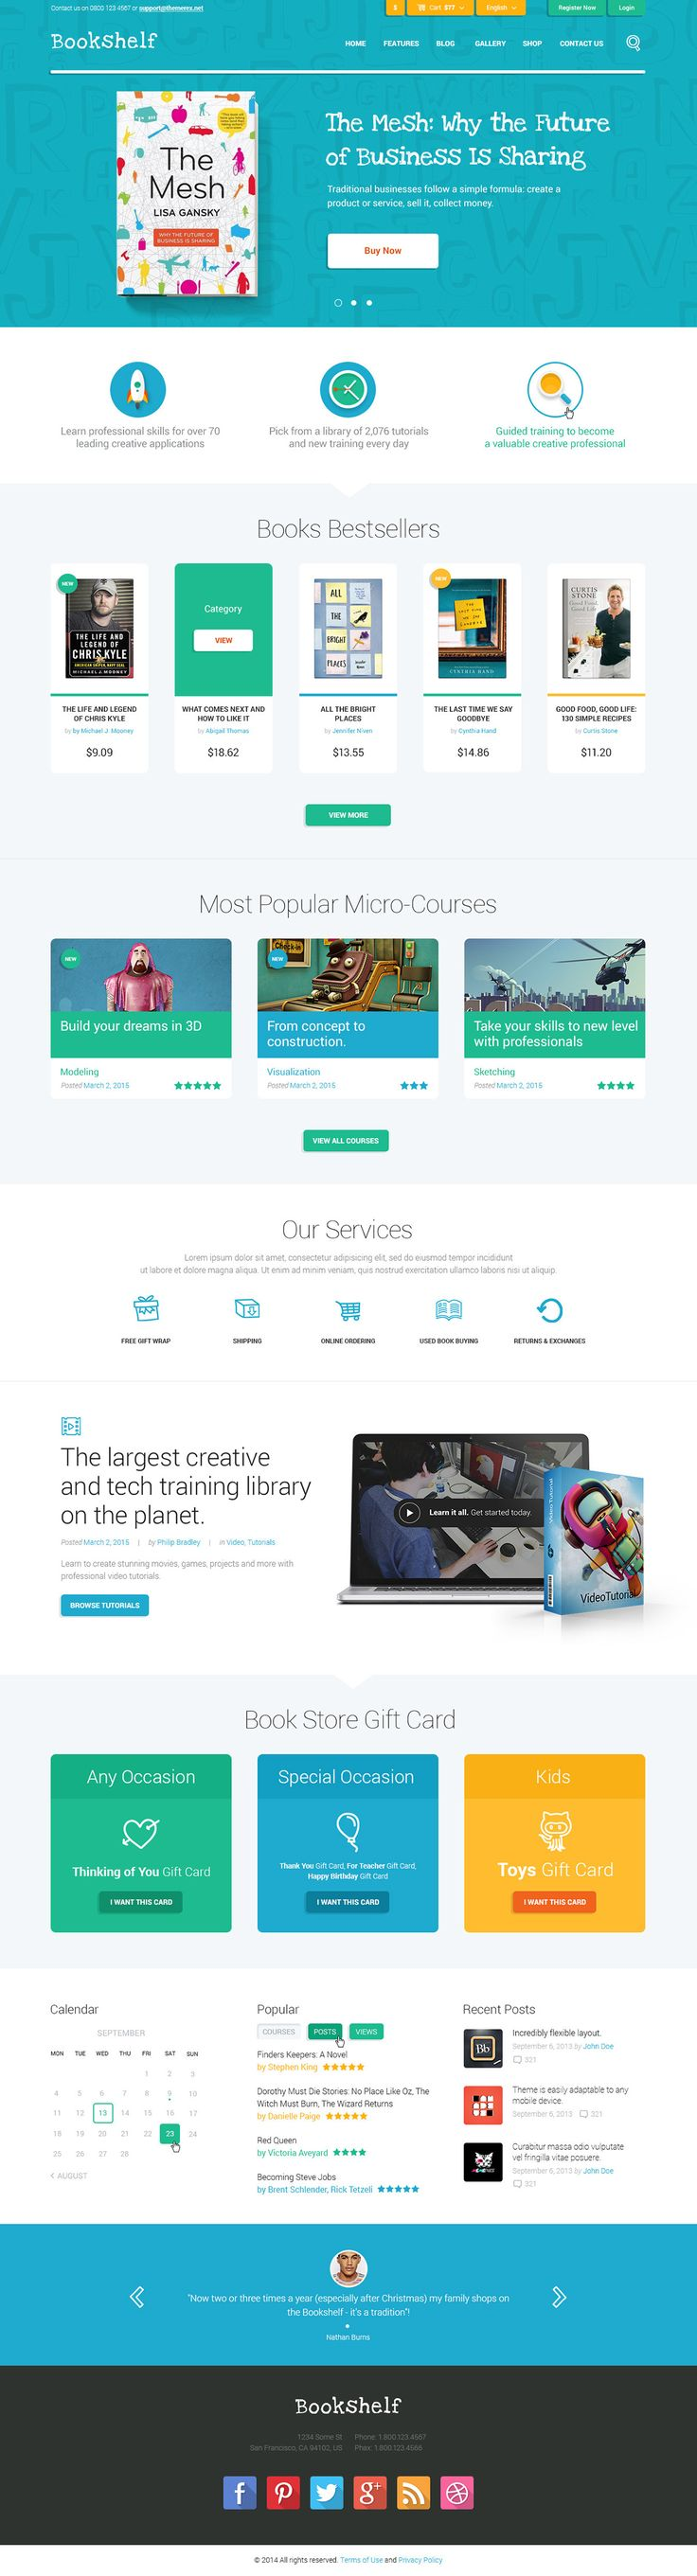 980 best web design images on Pinterest | Design websites, Web ...